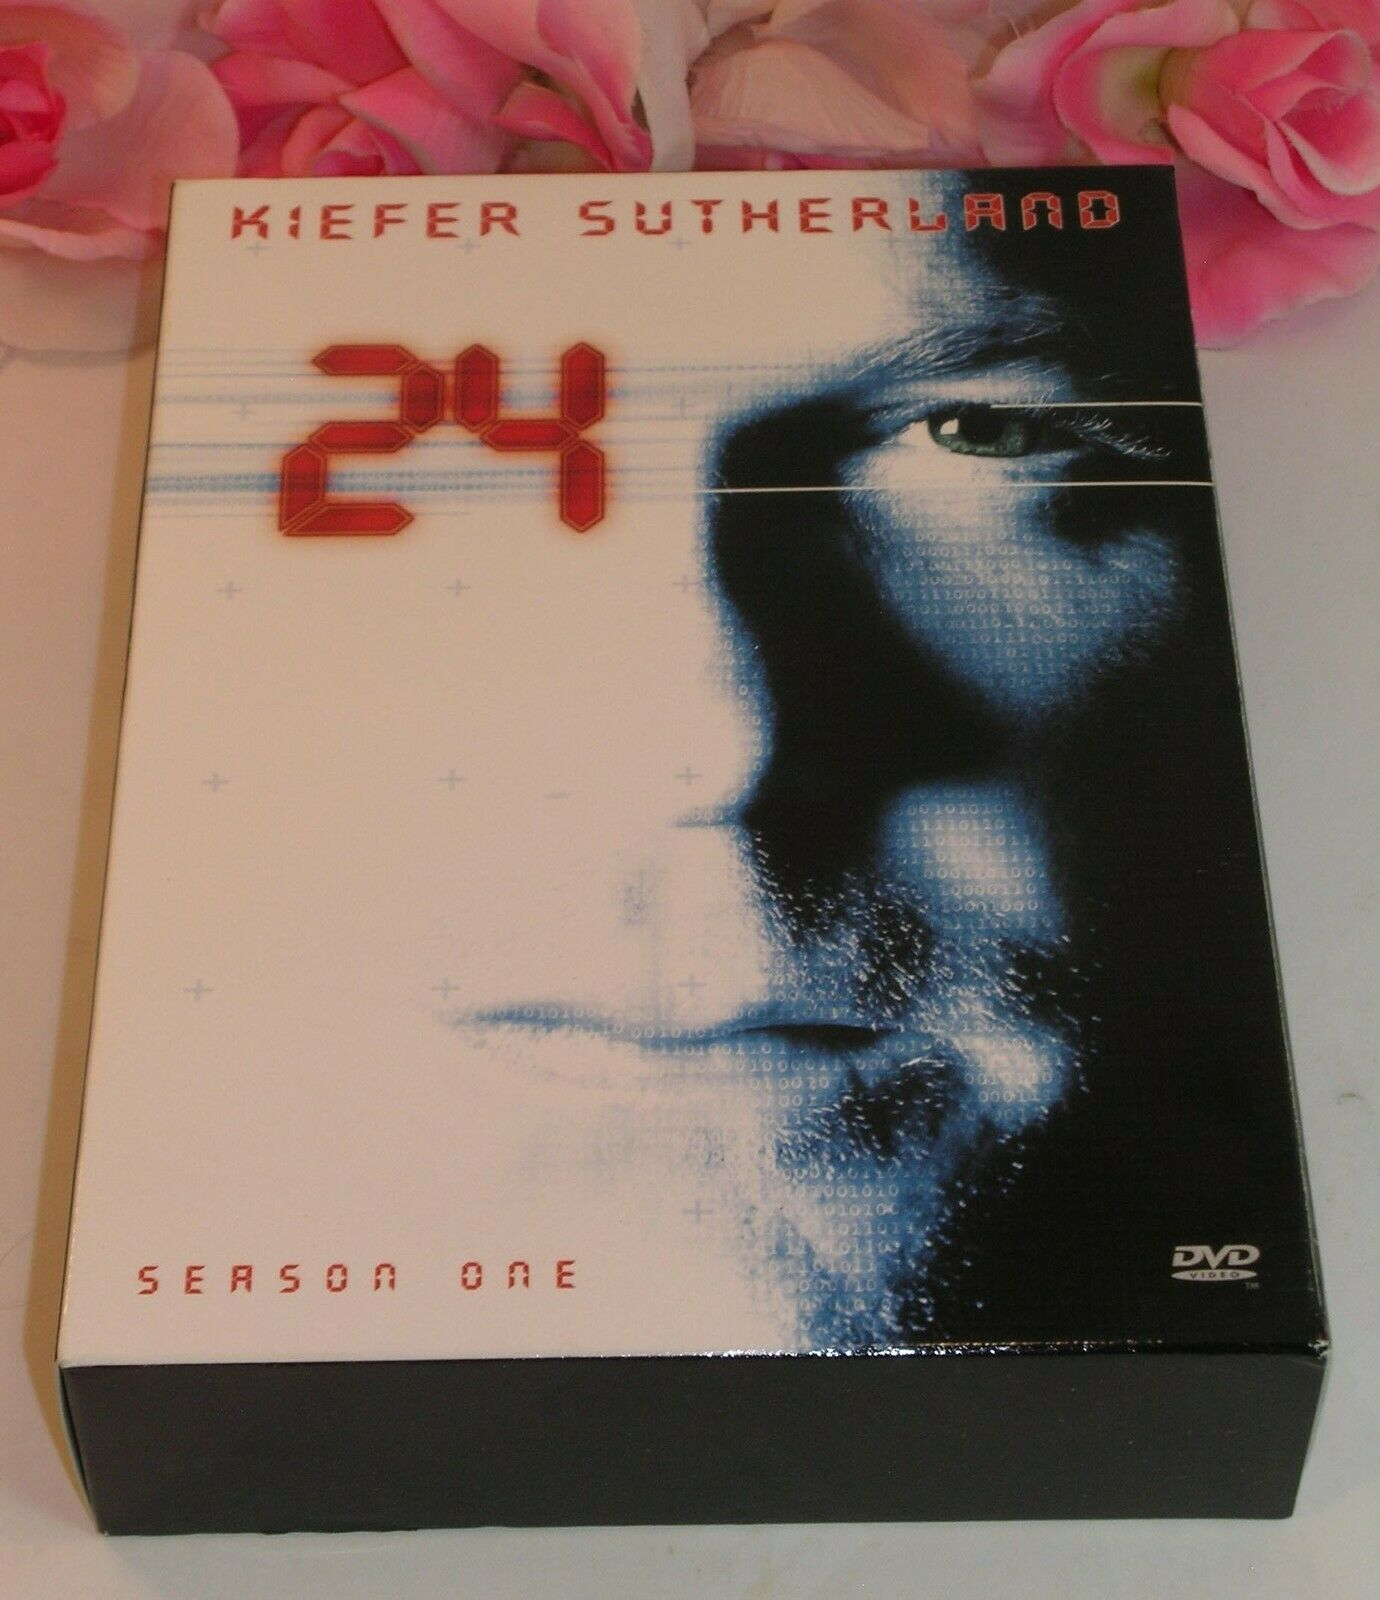 Primary image for 24 Kiefer Sutherland Complete Season One (1) TV Series Gently Used DVD's 6 Discs